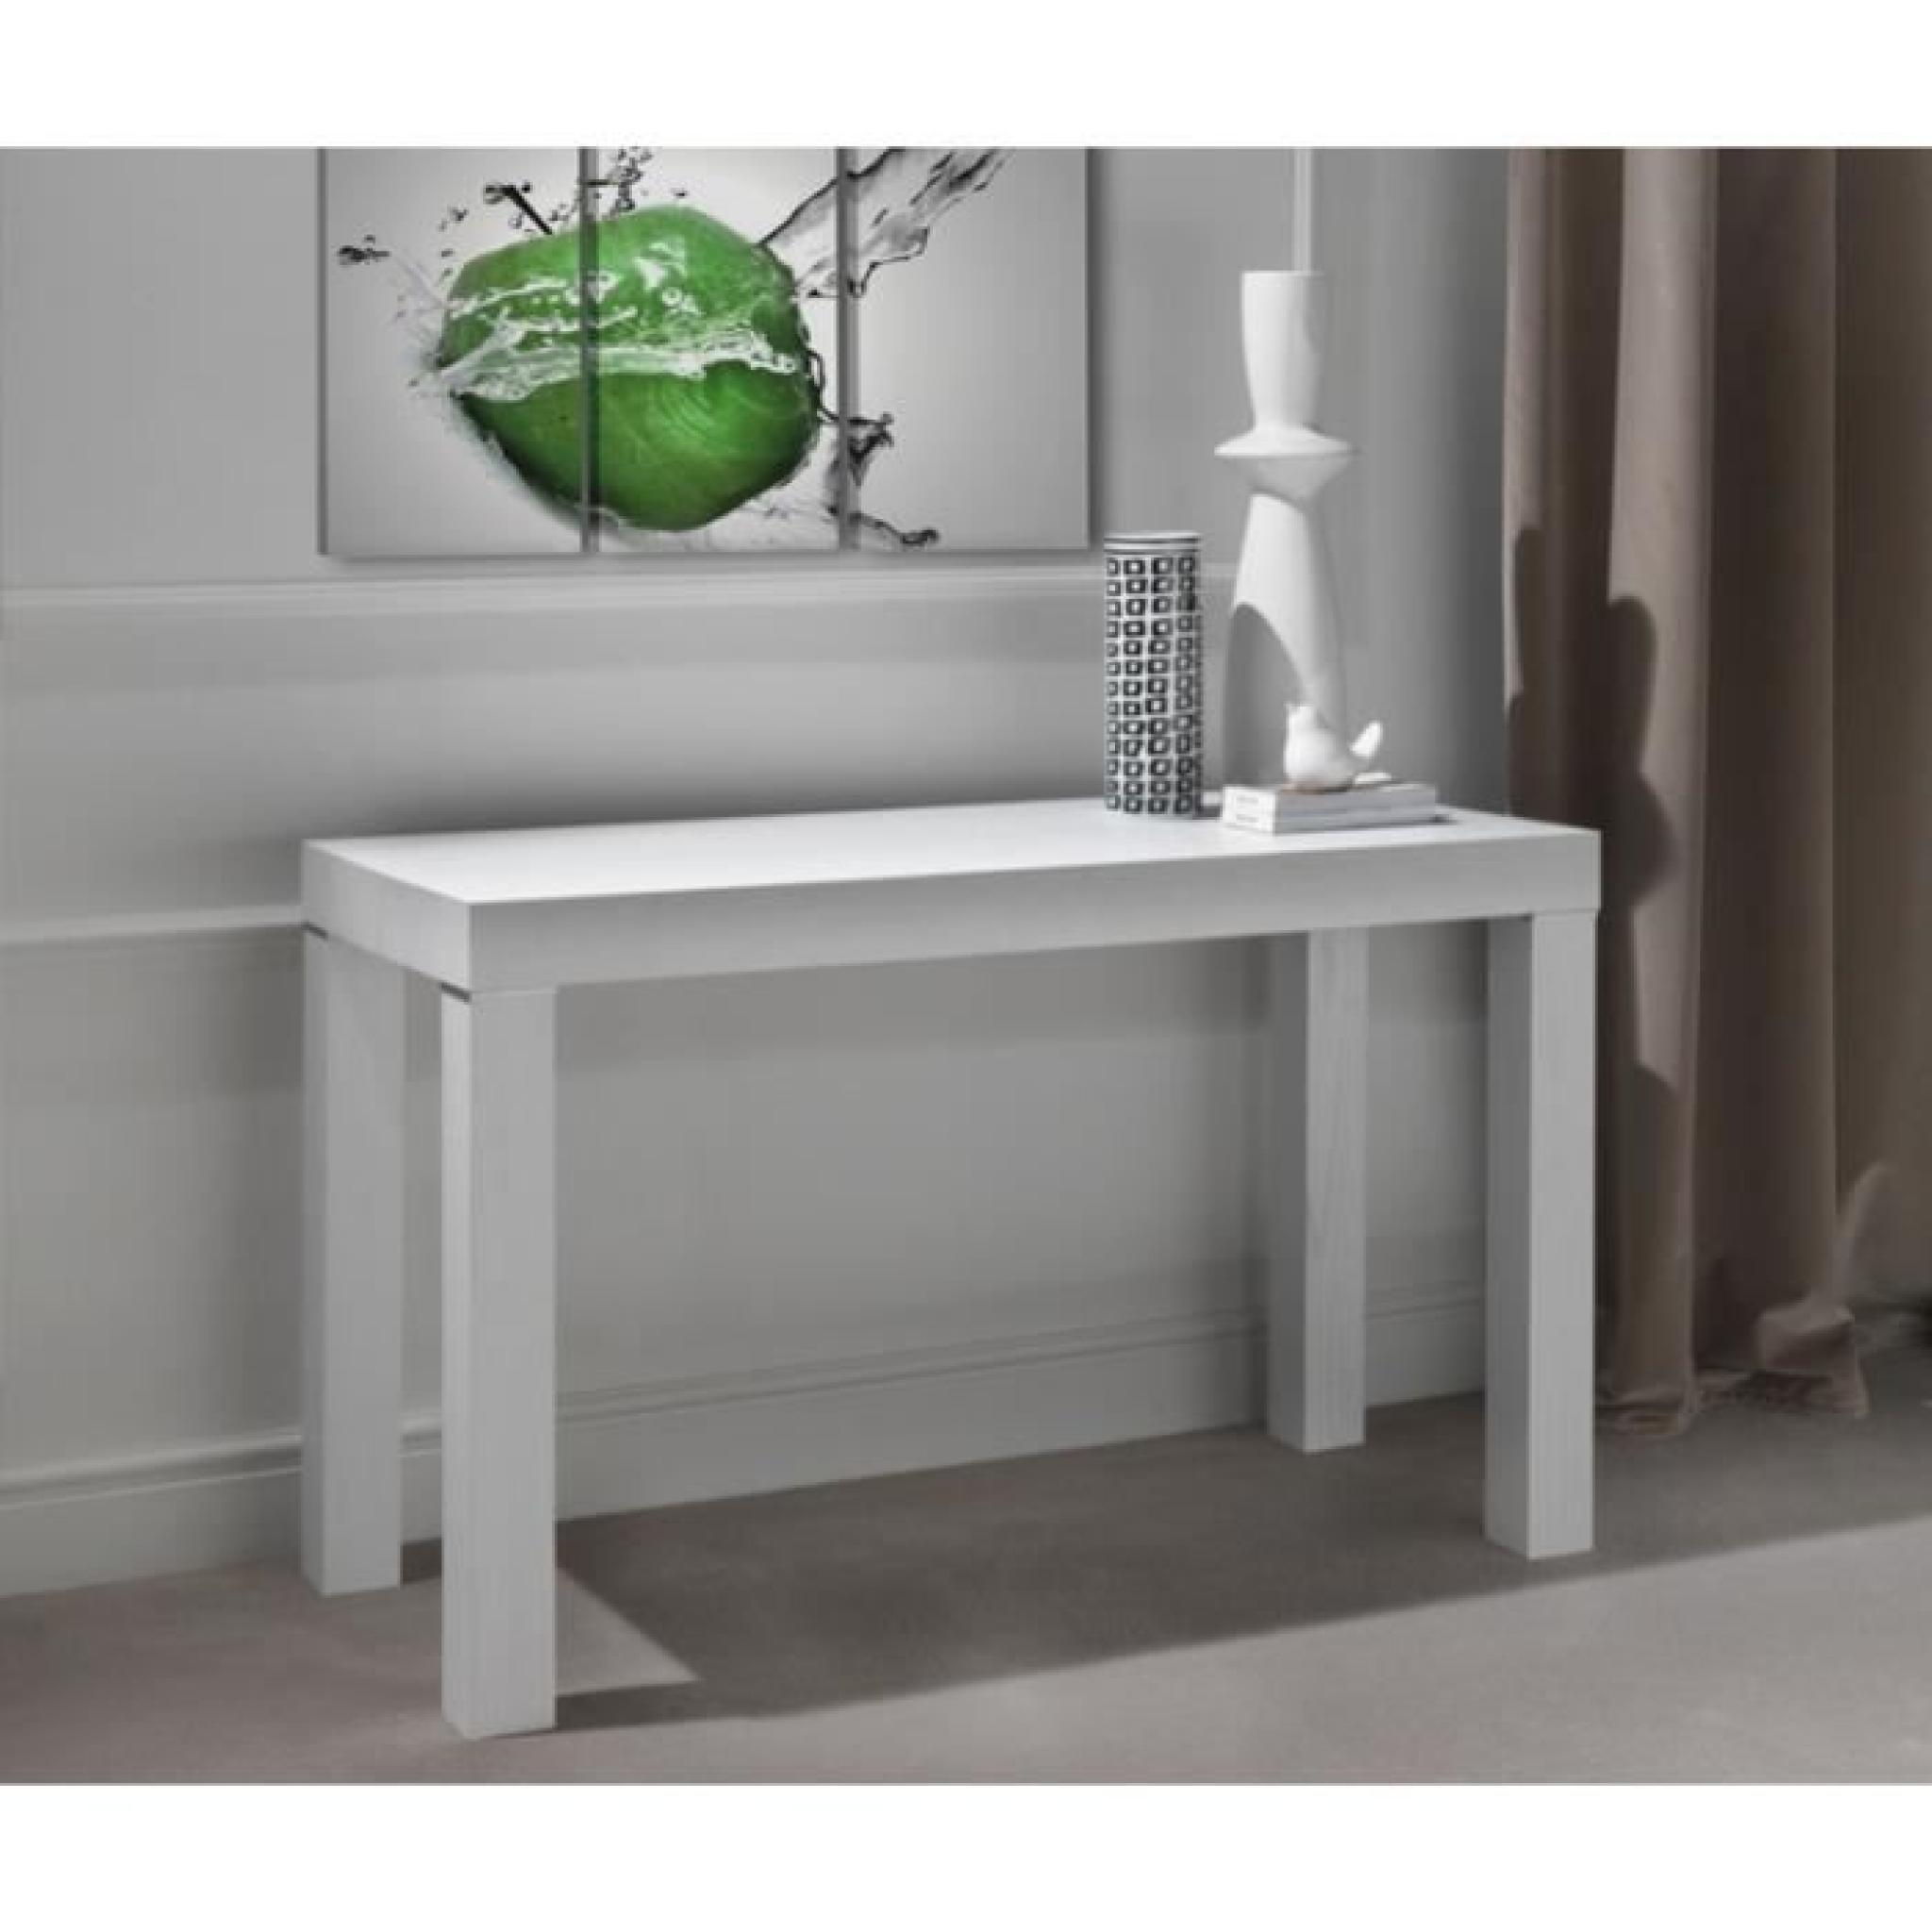 console murale transformable en table blanc laurine 3 rallonges achat vente console meuble pas. Black Bedroom Furniture Sets. Home Design Ideas